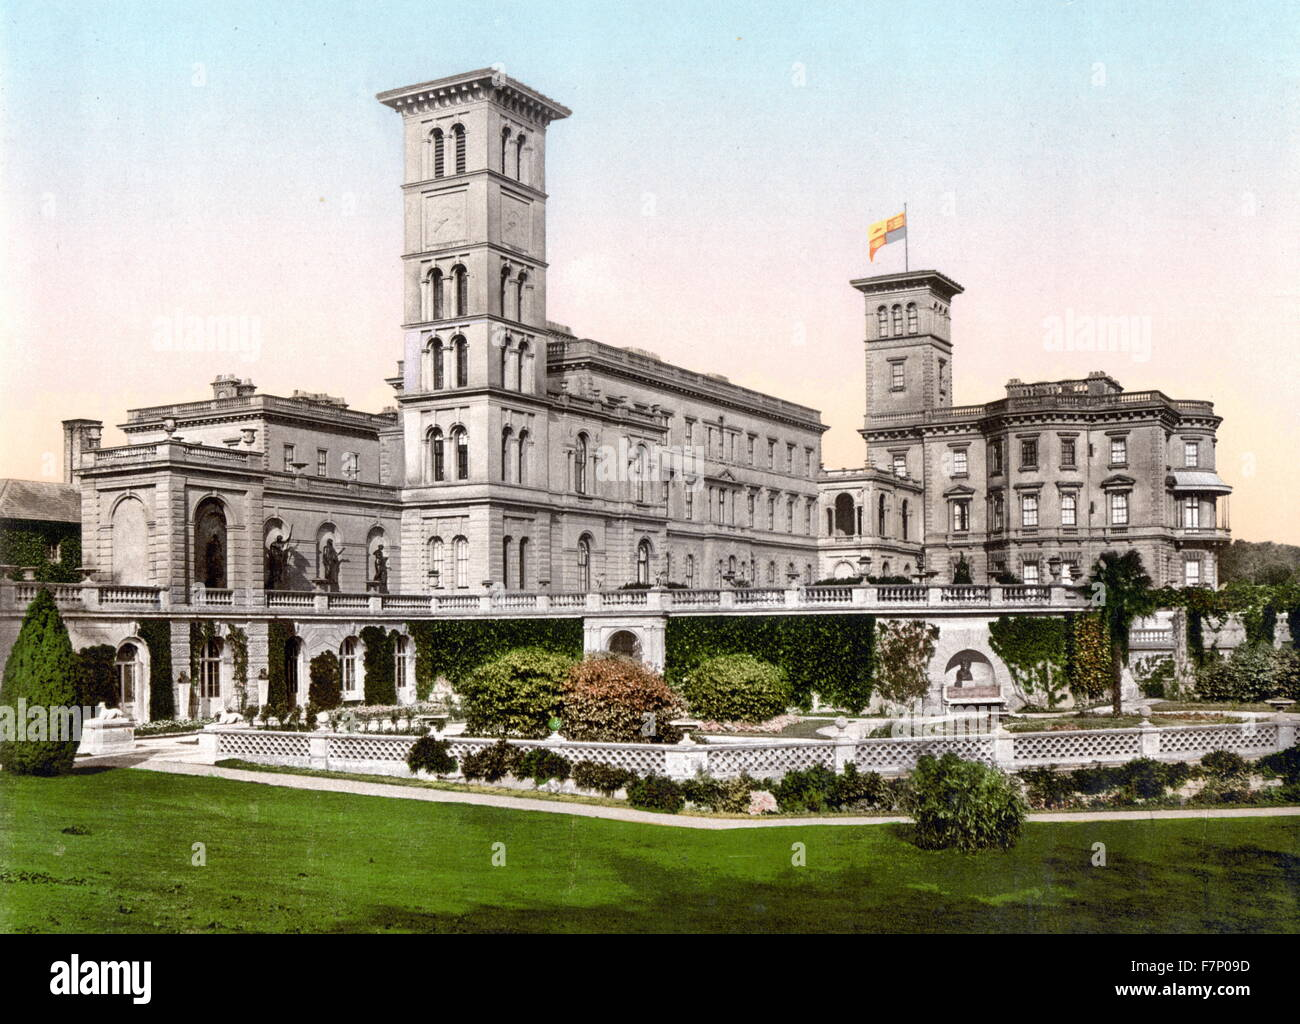 Osborne House, Isle of Wight, England 1890. Osborne House is a former royal residence in East Cowes, Isle of Wight, - Stock Image